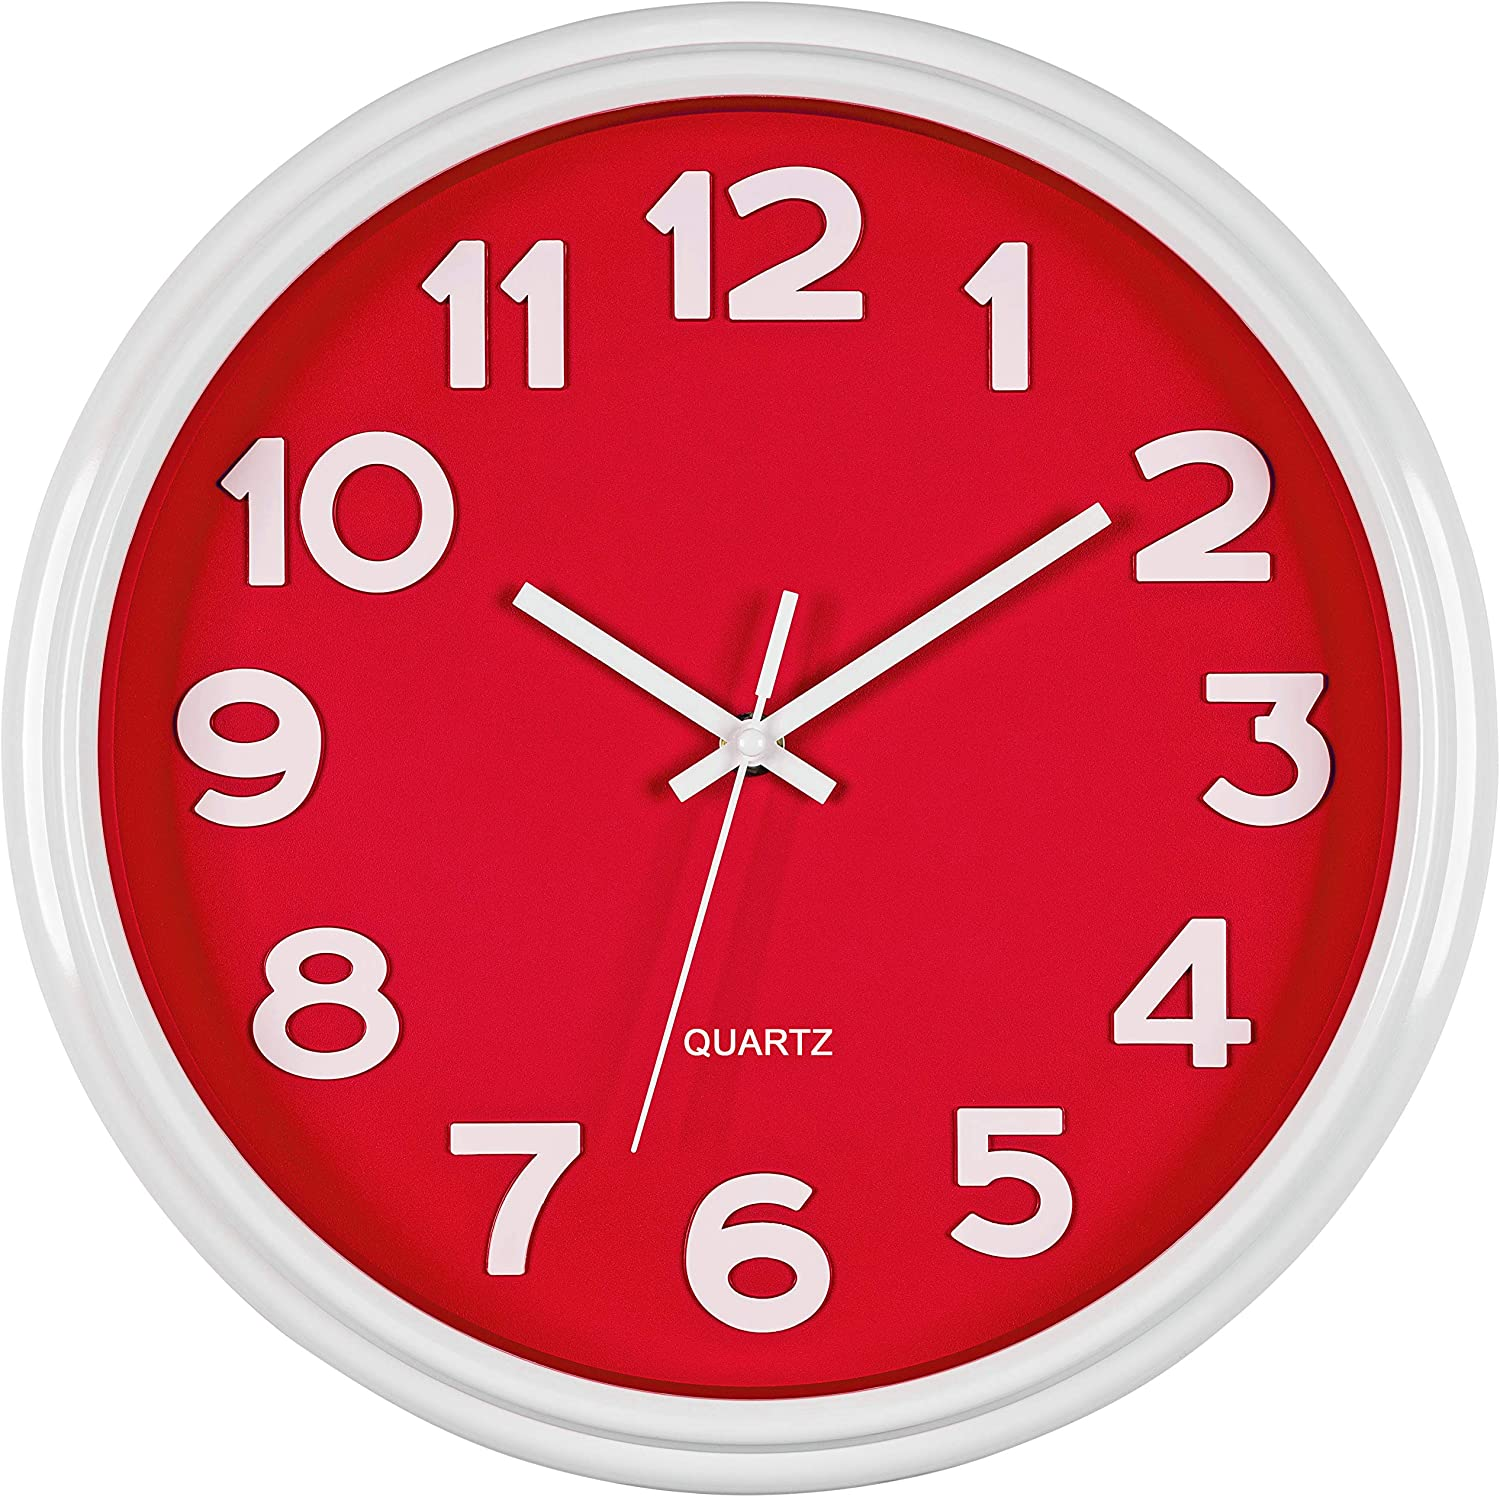 Bernhard Products Red Wall Clock 12.5 Inch Silent Non-Ticking Modern Stylish Quartz Clocks for Home Kitchen Office Bedroom Bathroom Nursery Kids School Classroom Battery Operated Easy to Read